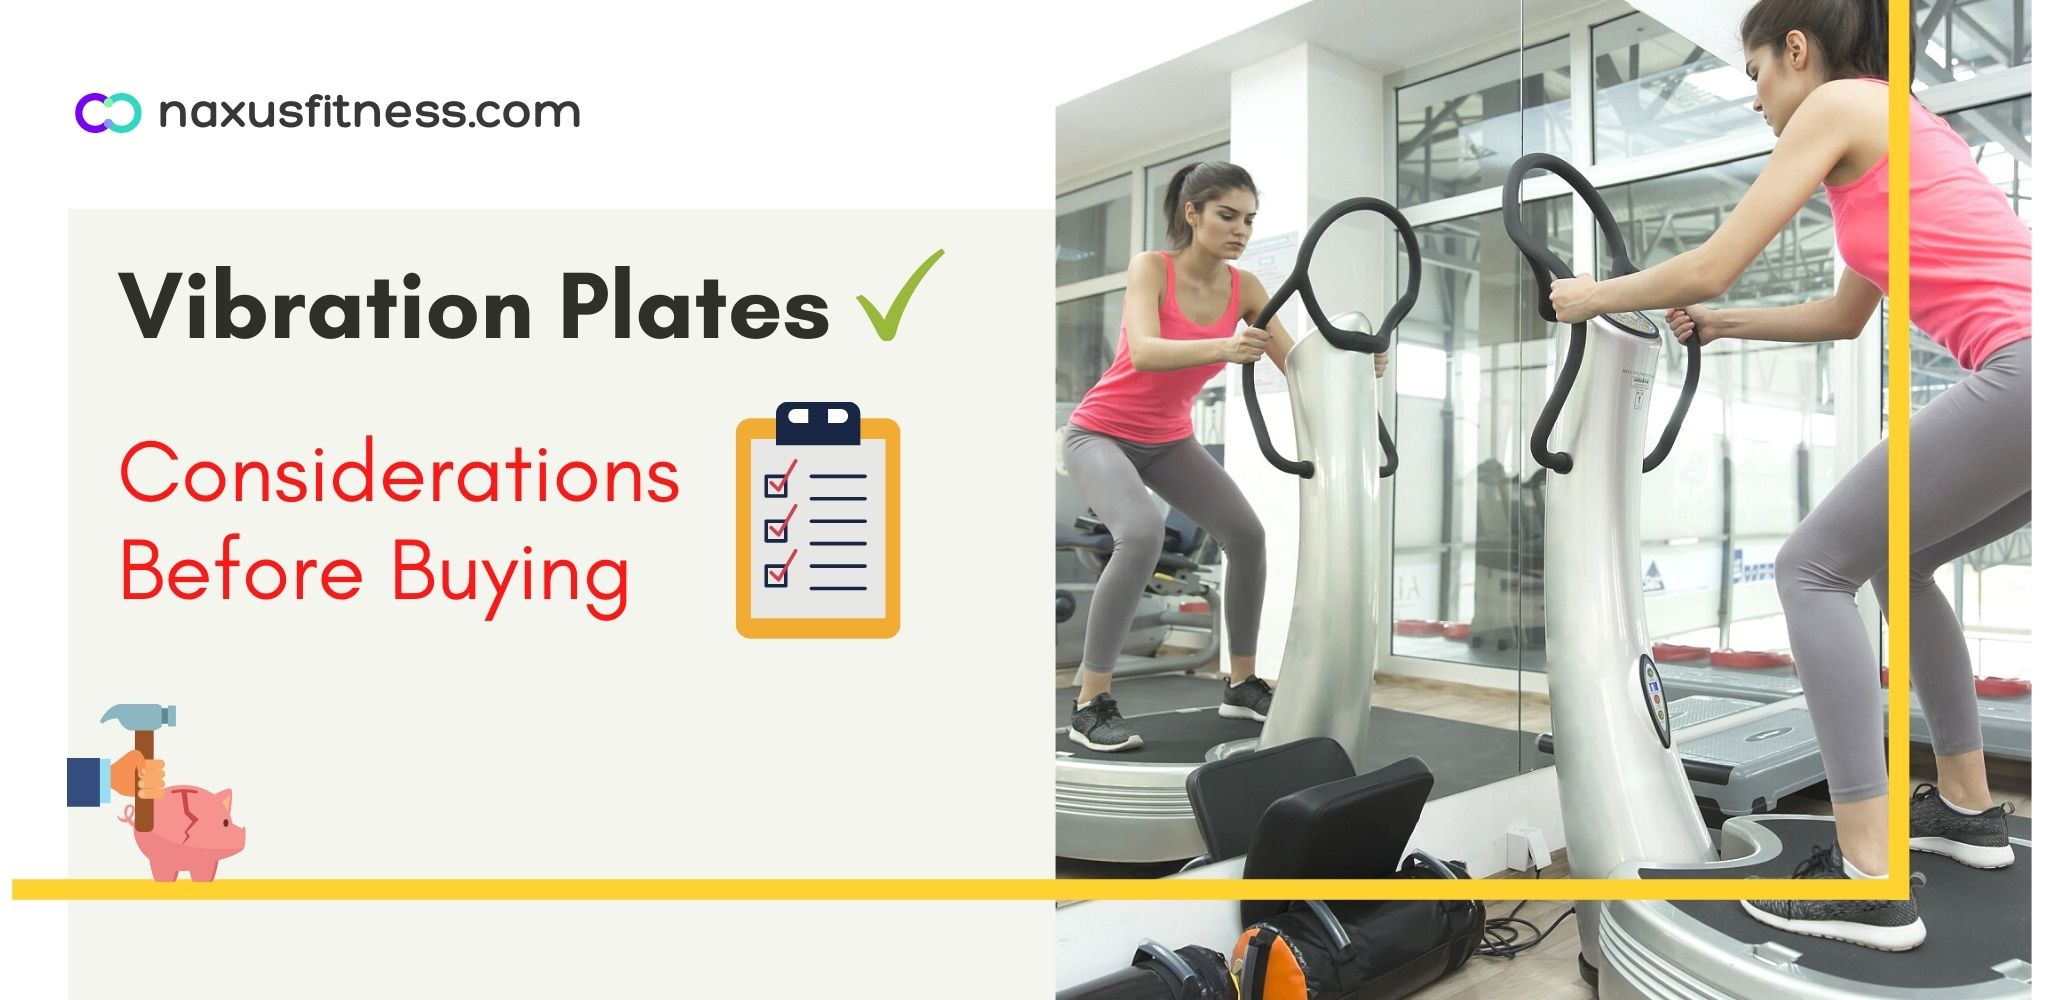 Vibration Plates considerations before buying